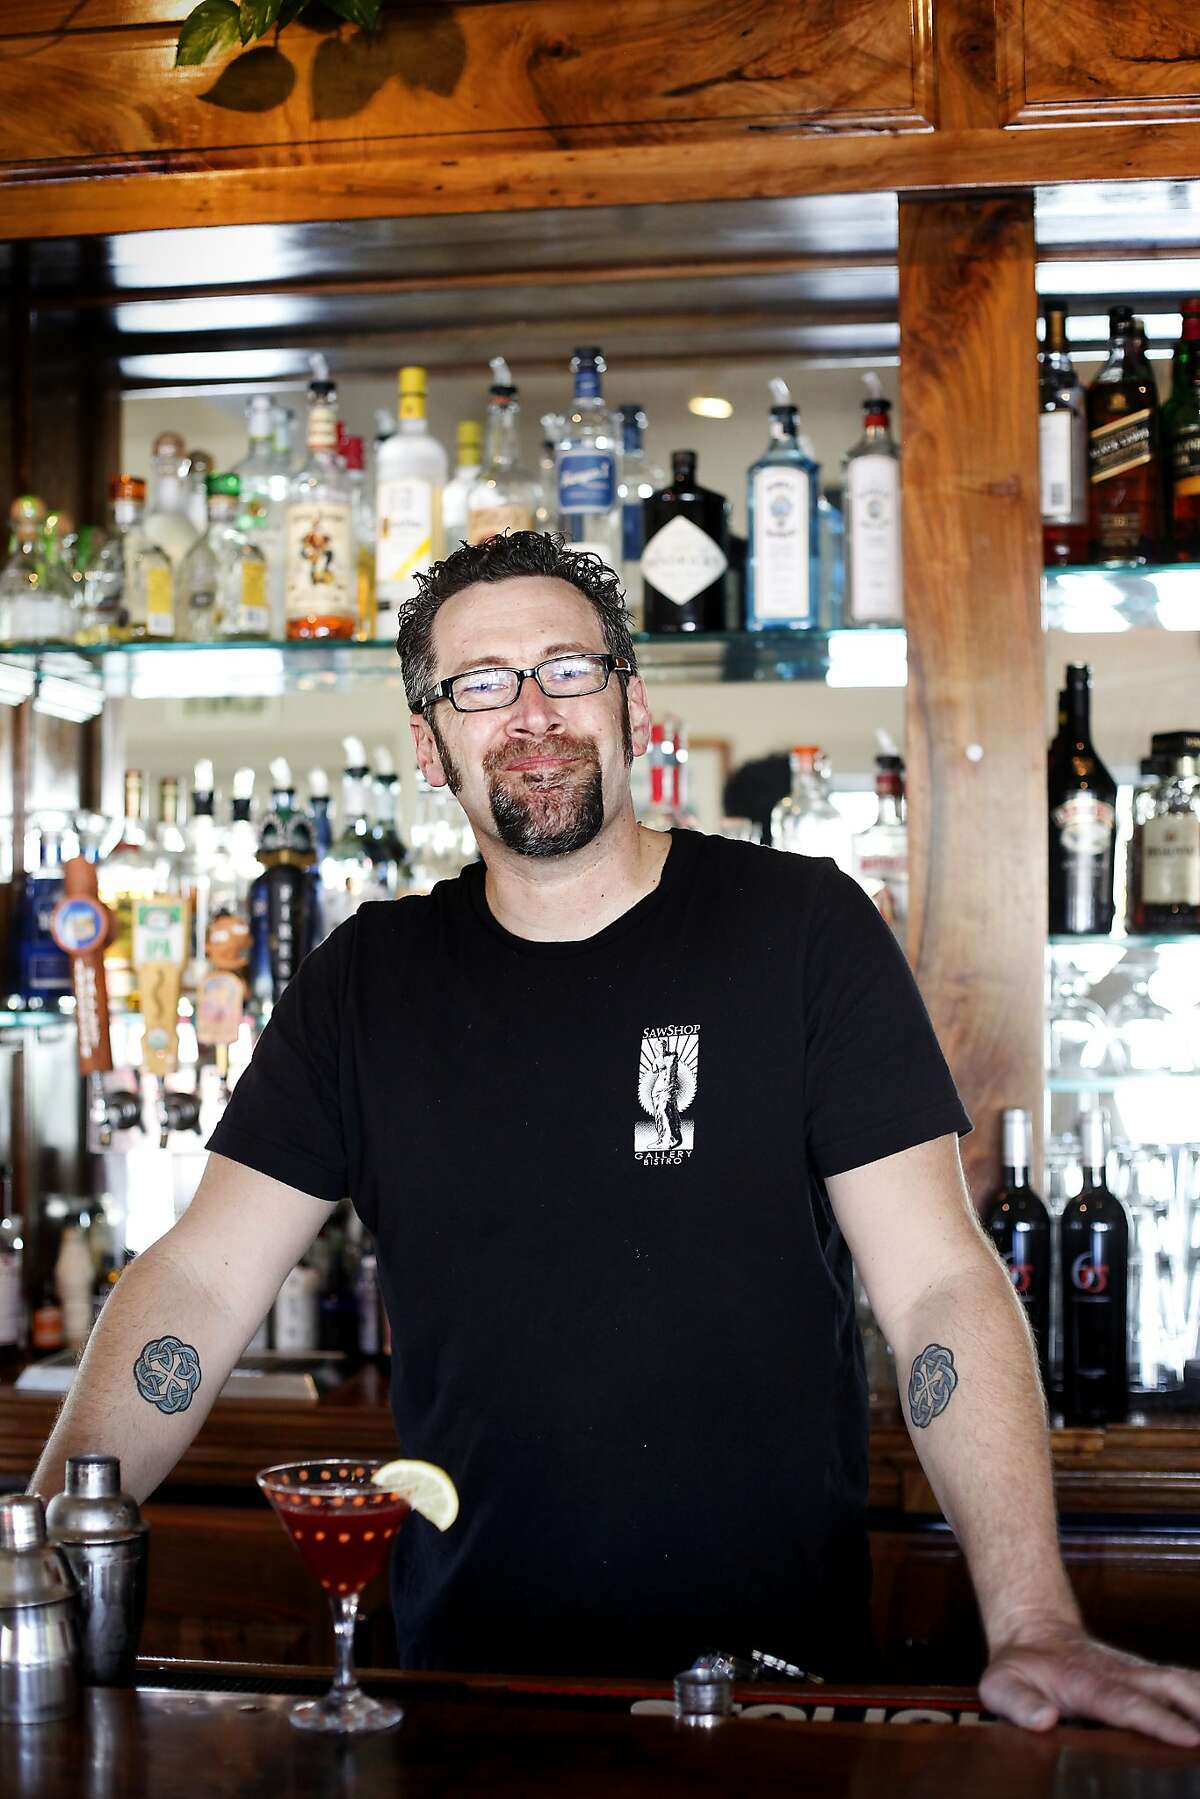 Bartender Bill Chapman at the Saw Shop, in Kelseyville, Calif., on Saturday, March 28, 2015.